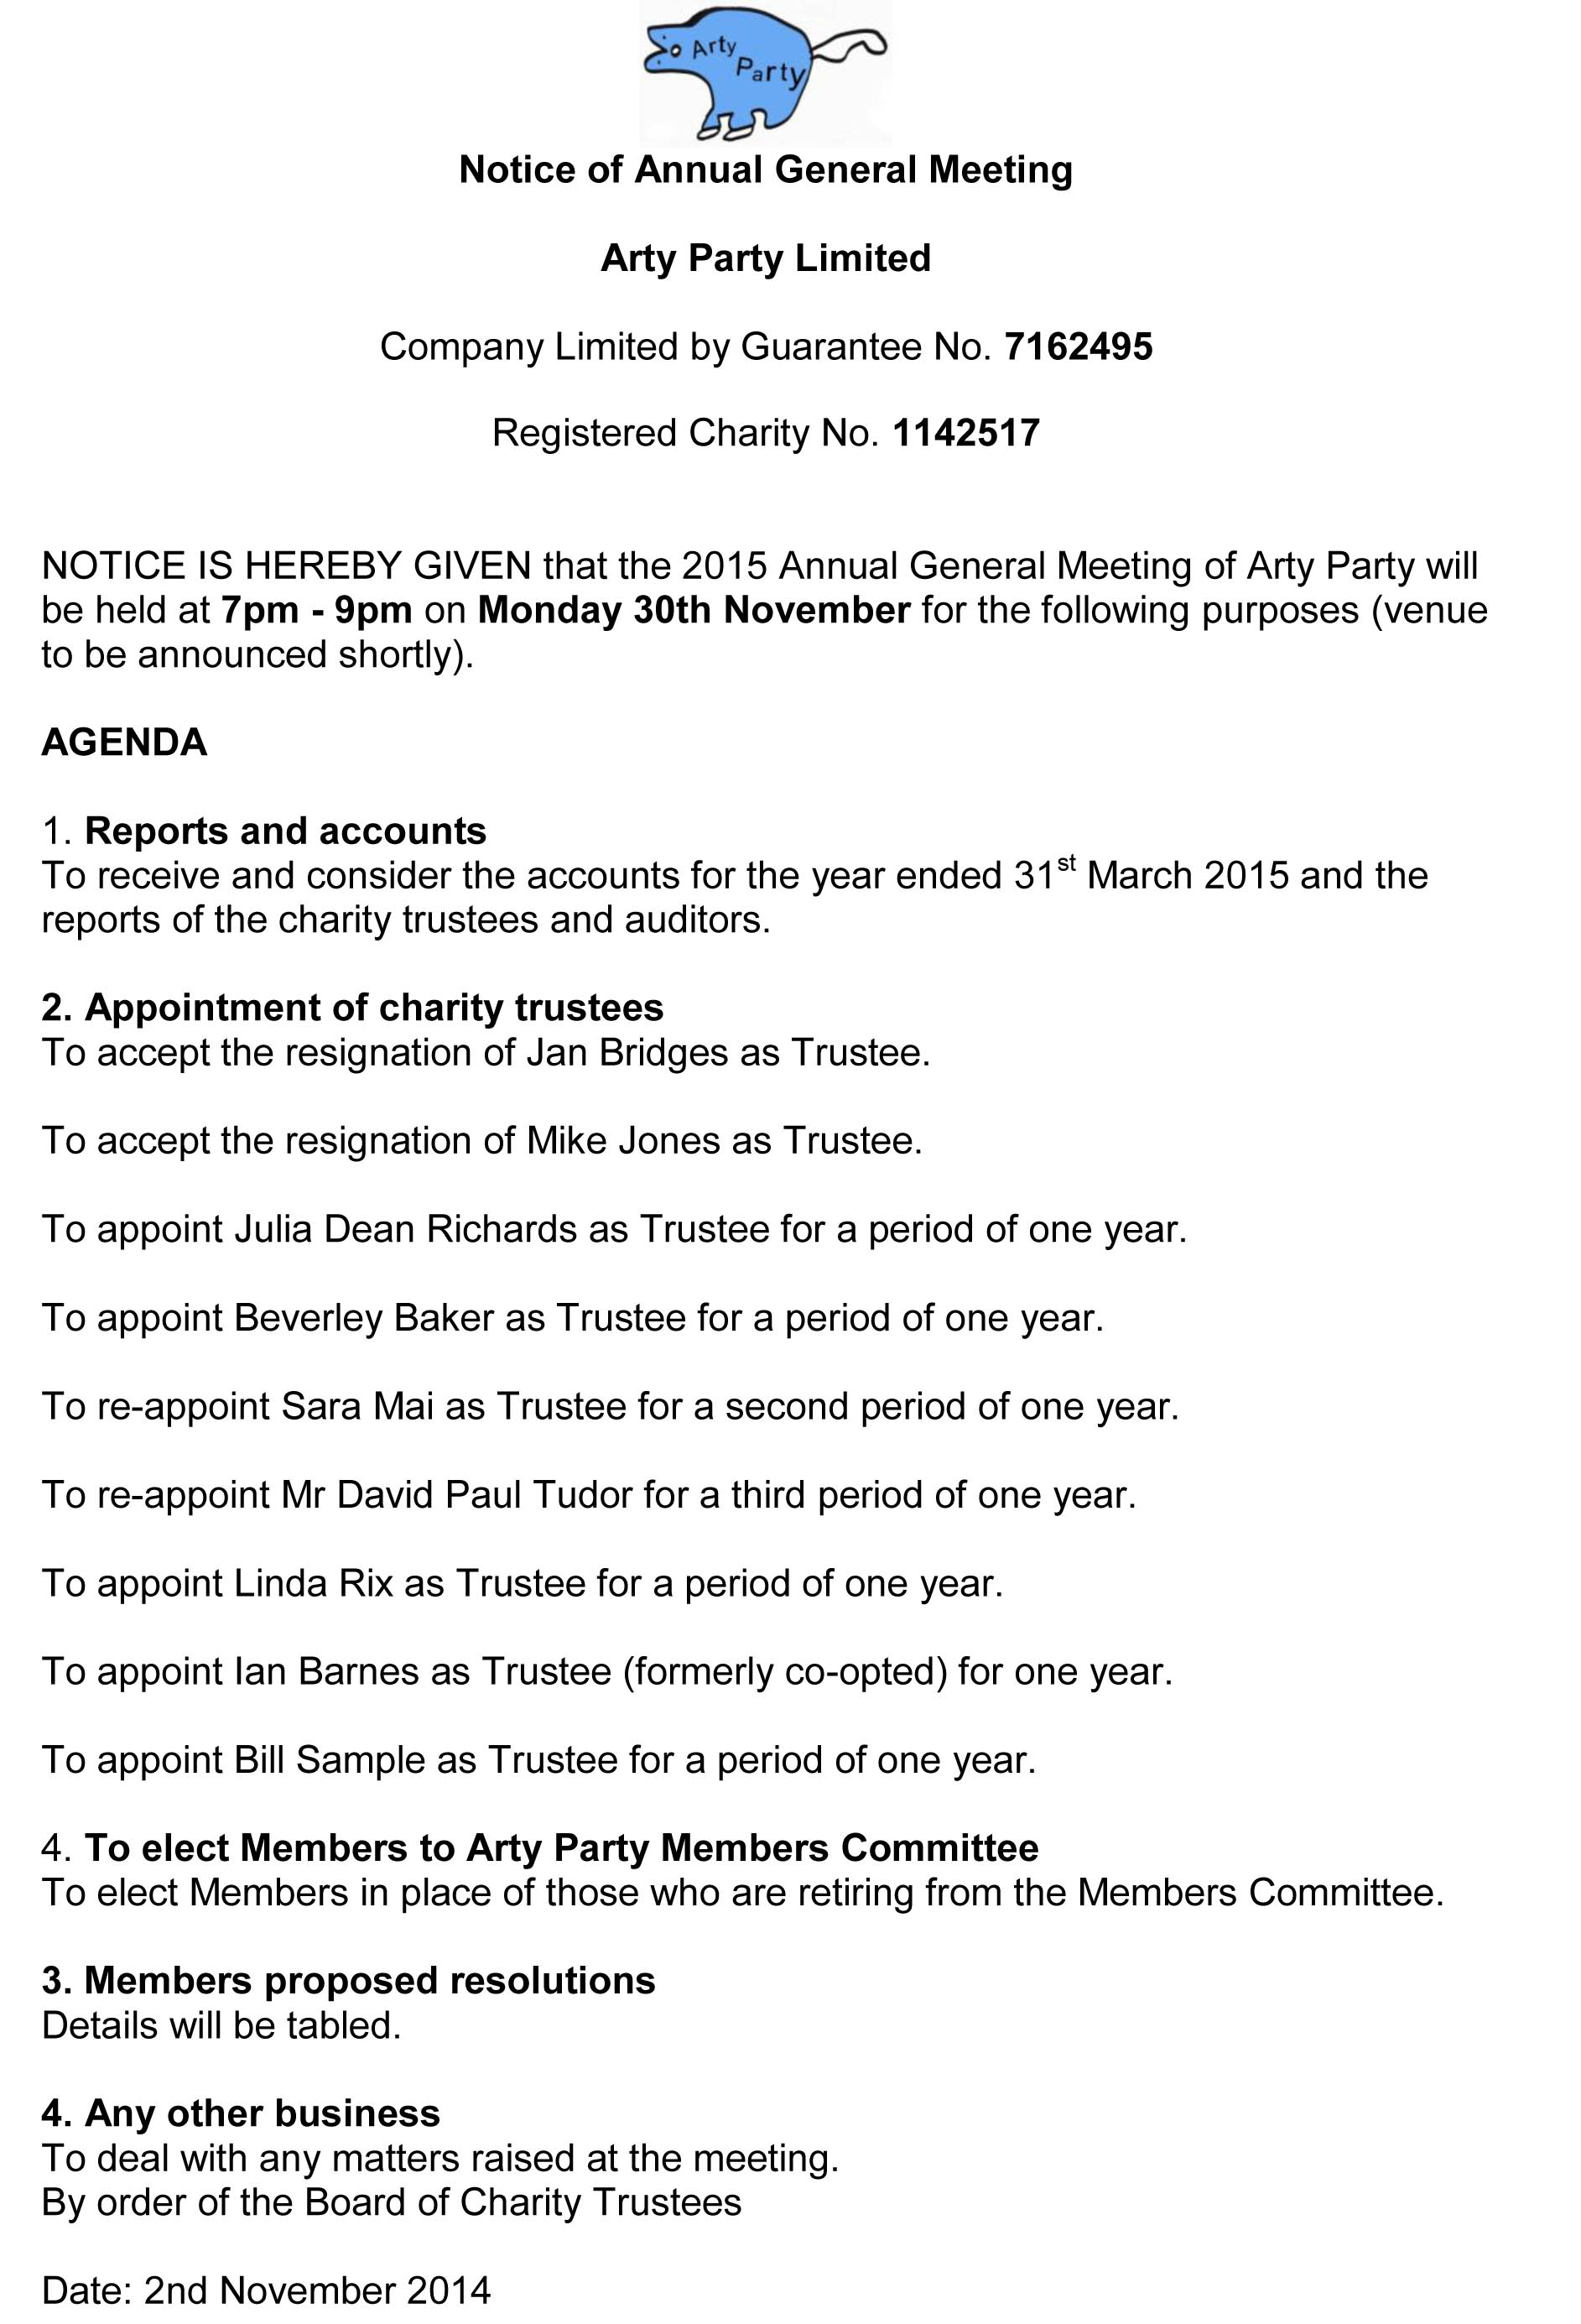 Notice of 2015 Annual General Meeting